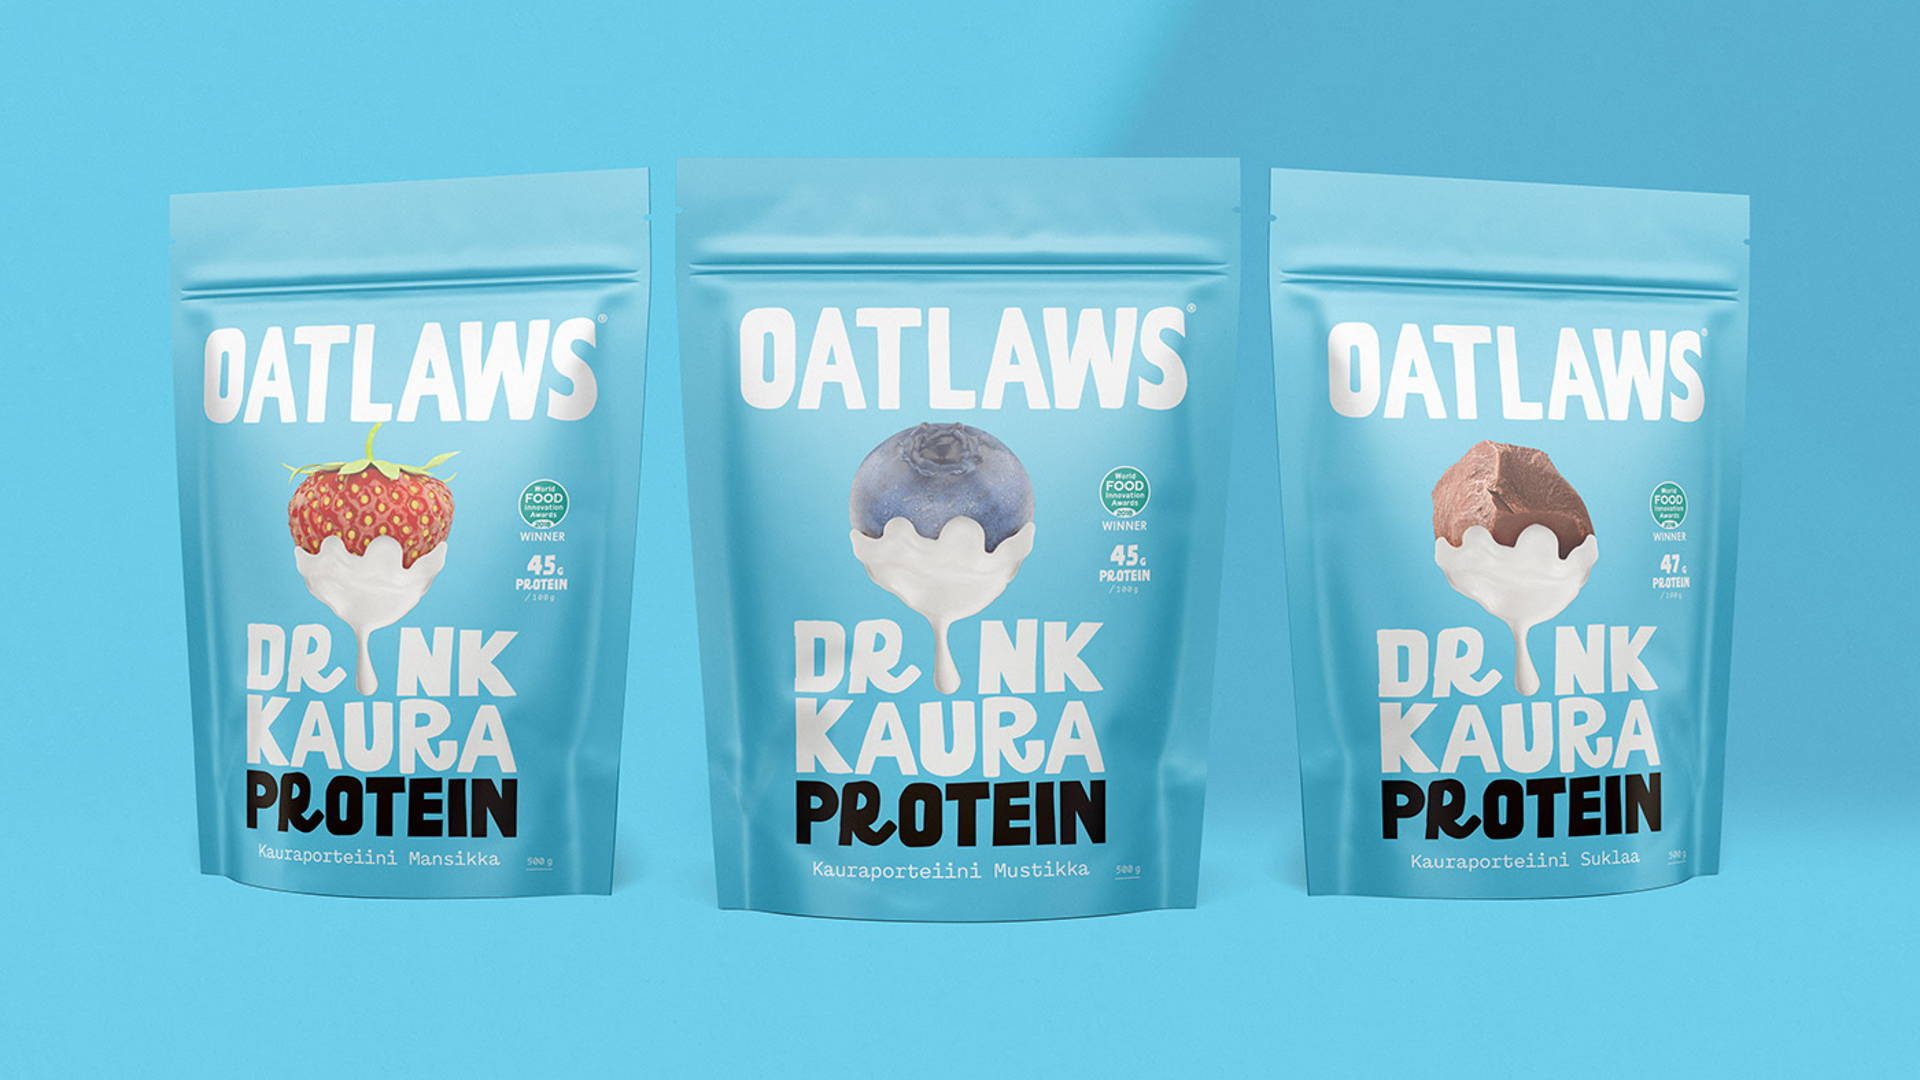 , Outlaws Sustainable Oat Products Drops A Versatile Design System | Dieline – Design, Branding & Packaging Inspiration, The Circular Economy